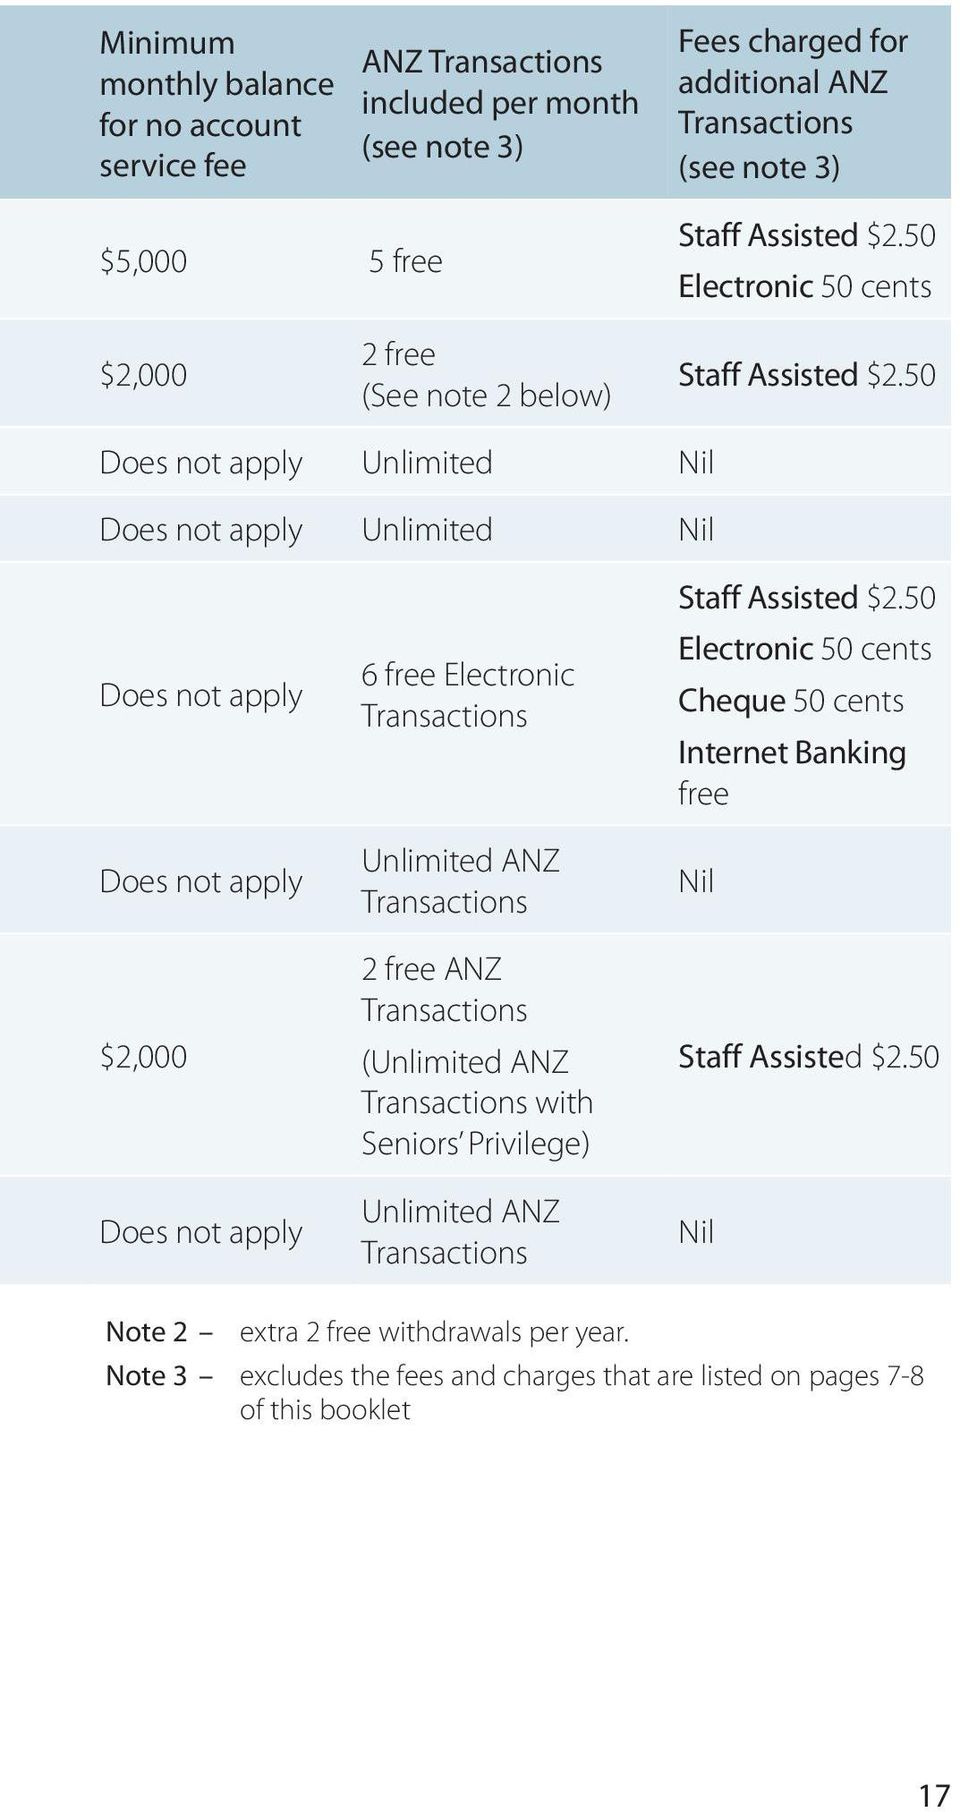 how to cancel an anz transaction